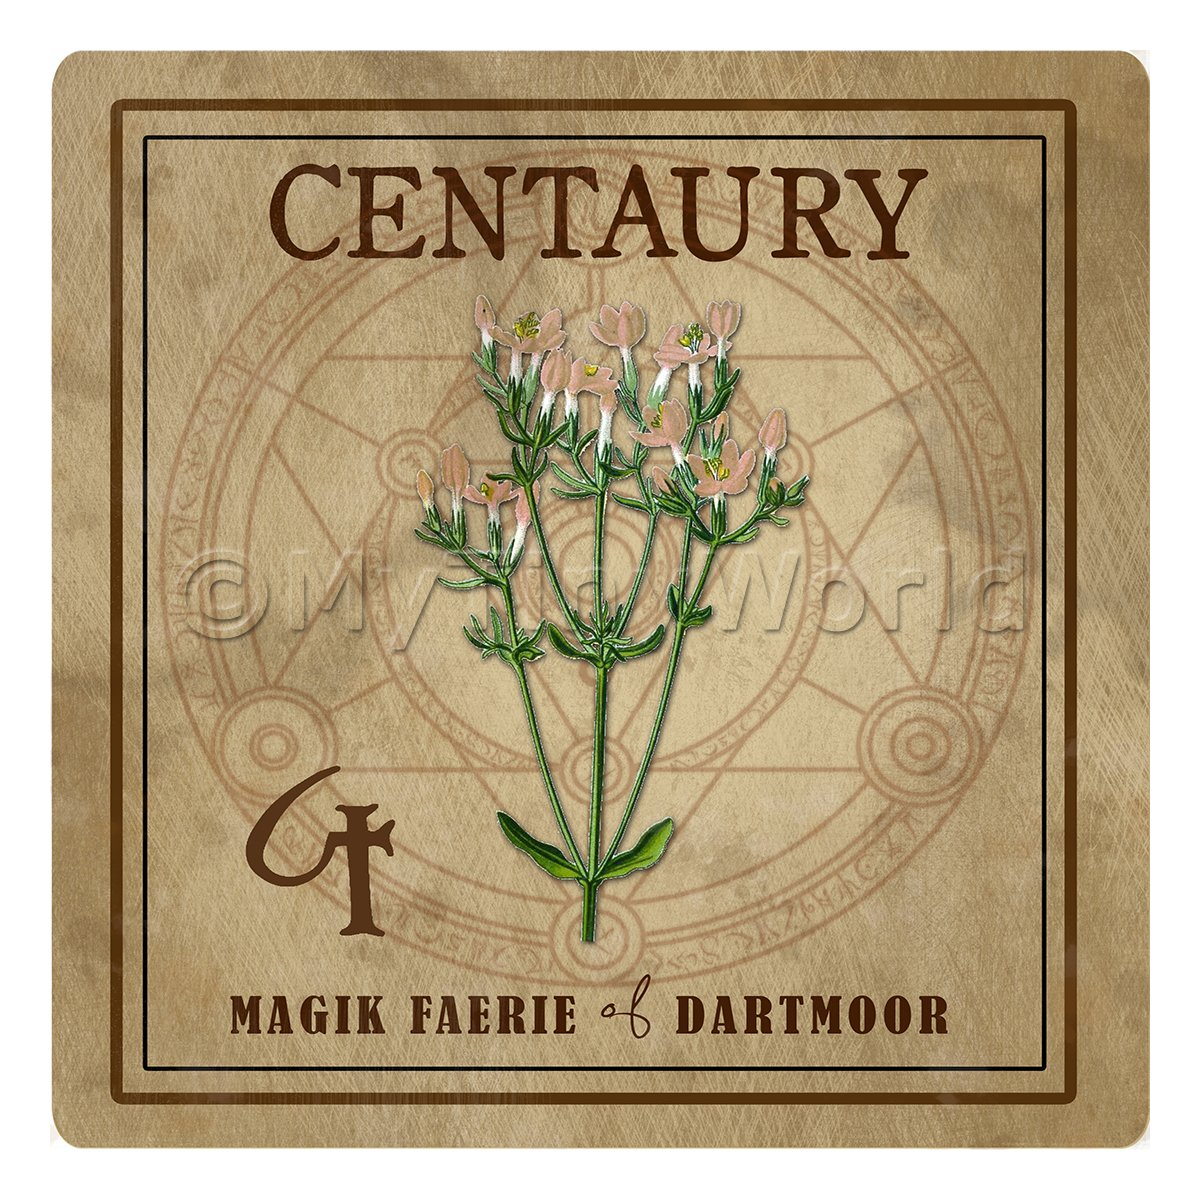 Dolls House Herbalist/Apothecary Square Centuary Herb Label